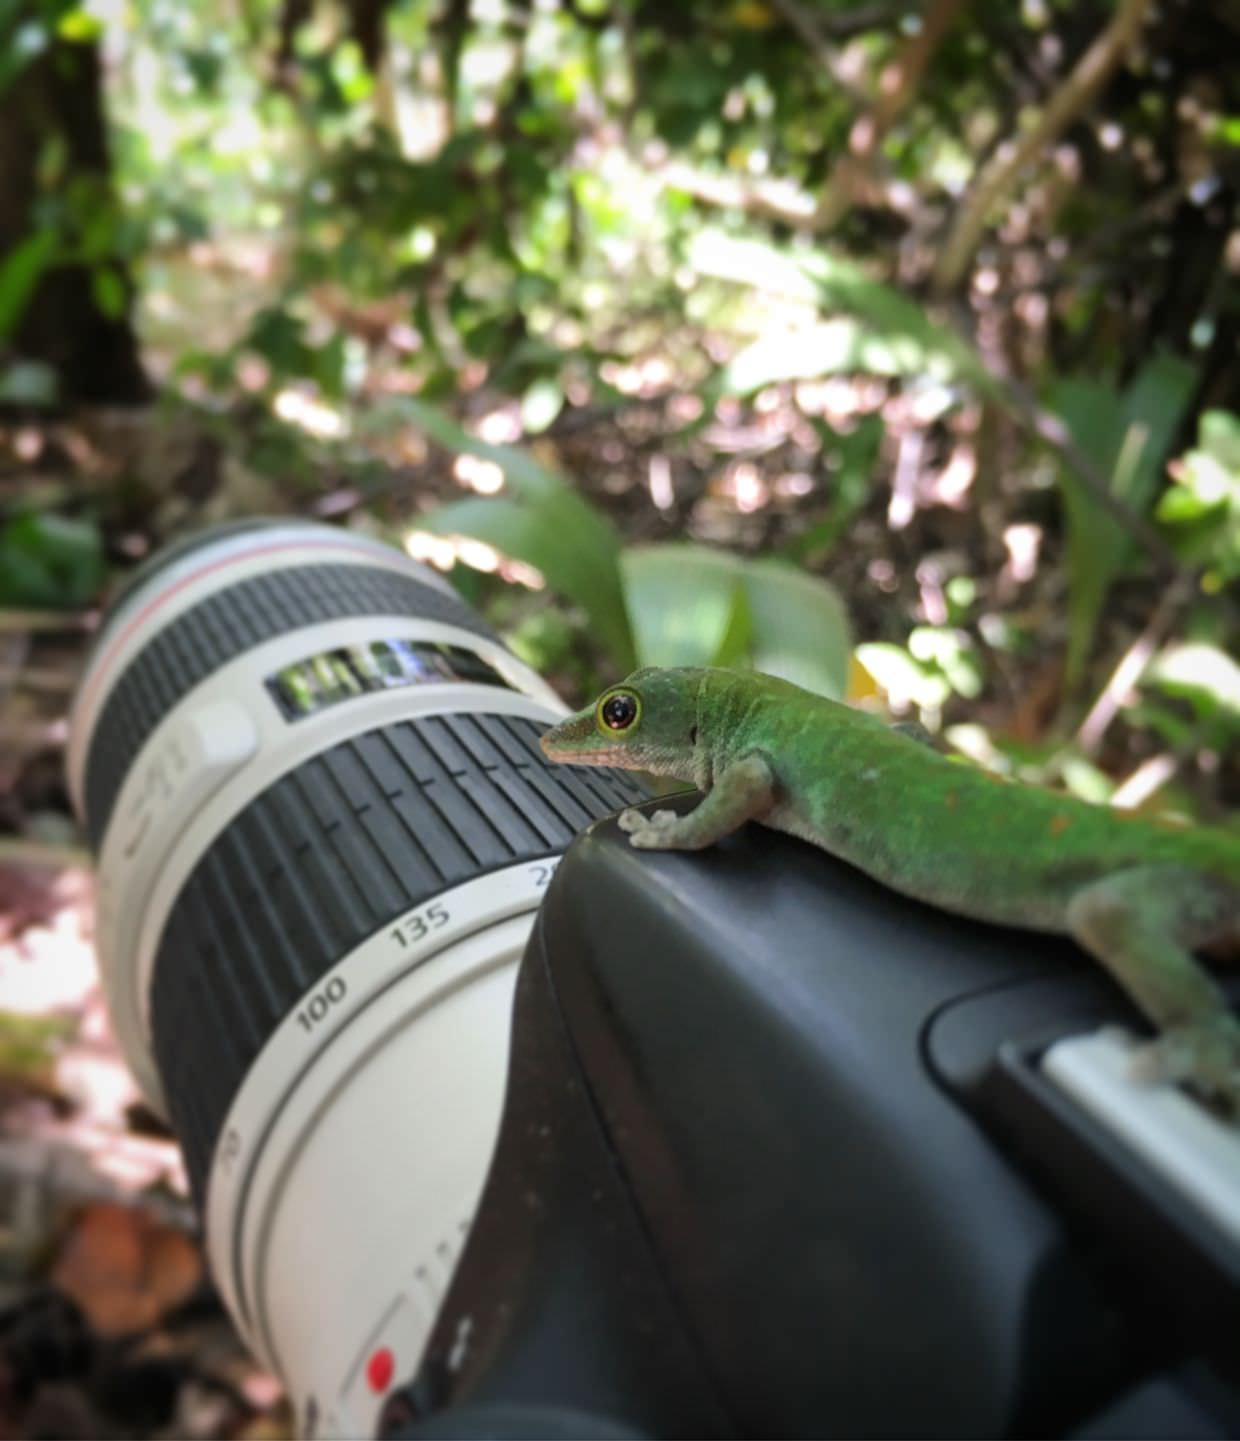 Phelsuma gecko on my camera near the tree nursery